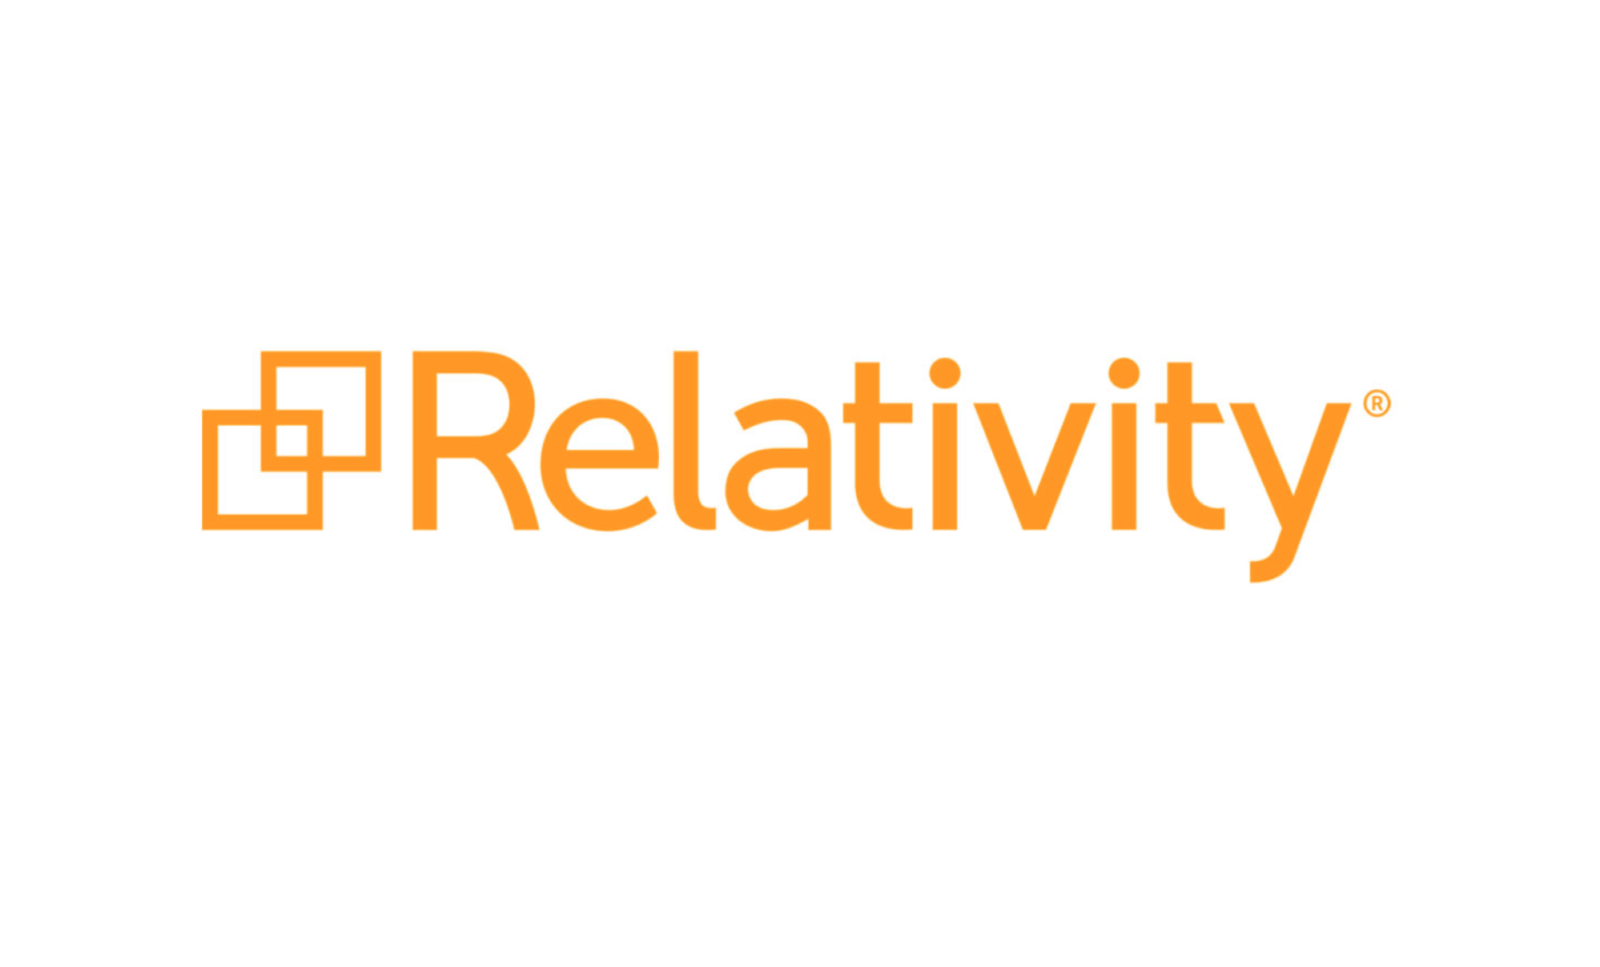 Relativity Bags CTO From Amazon Web Services, Will Add 300 Staff